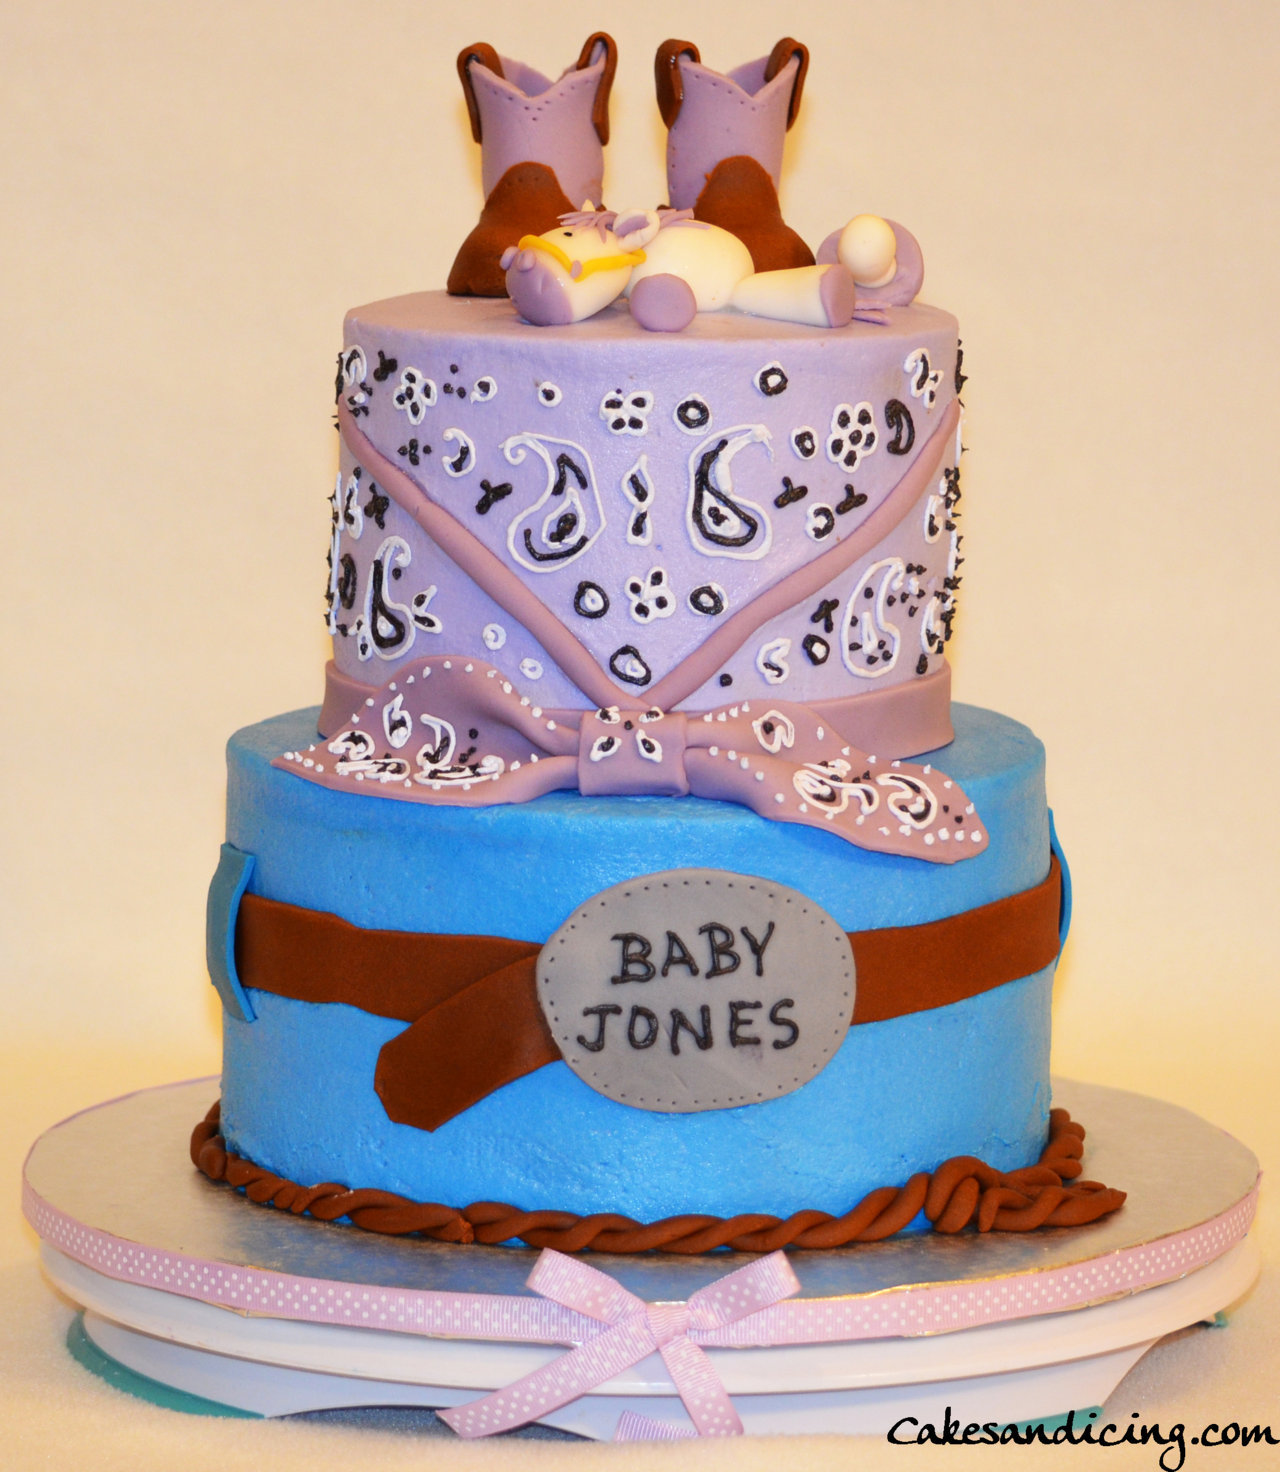 Baby Shower Cowboy Theme Cake 03 Custom Designed Cakes For All